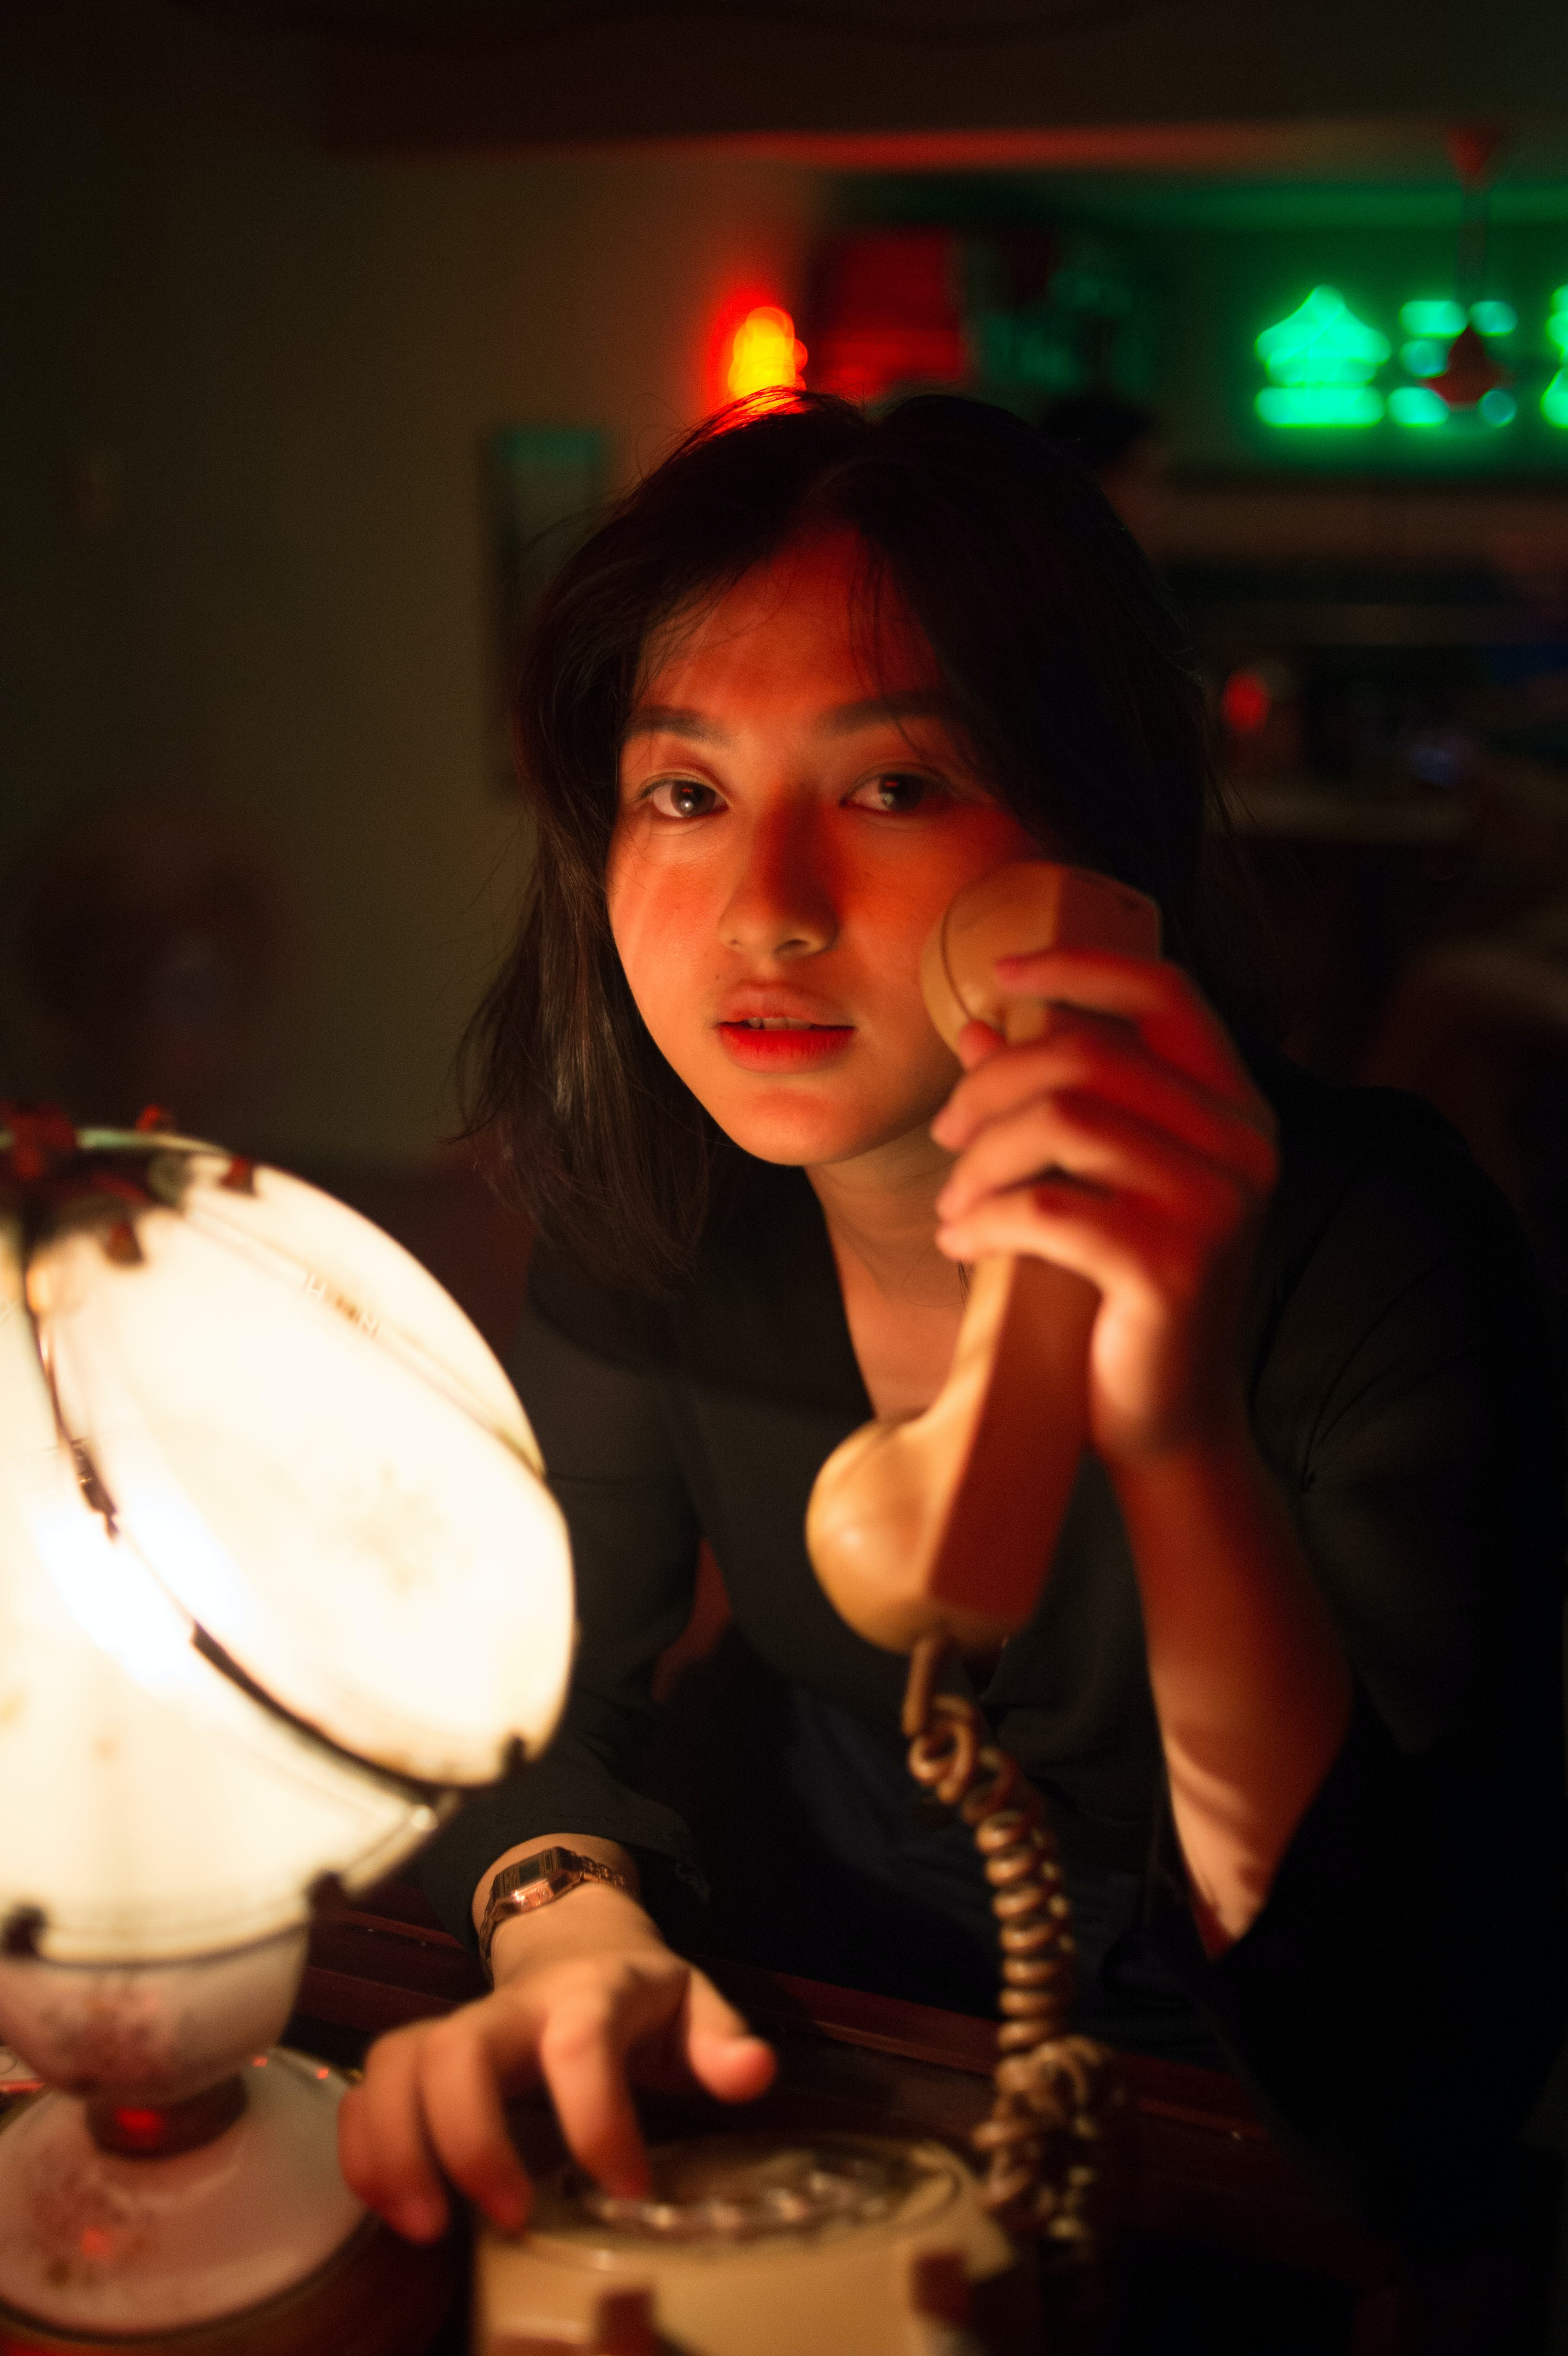 Close-Up Photo of Woman Holding Telephone